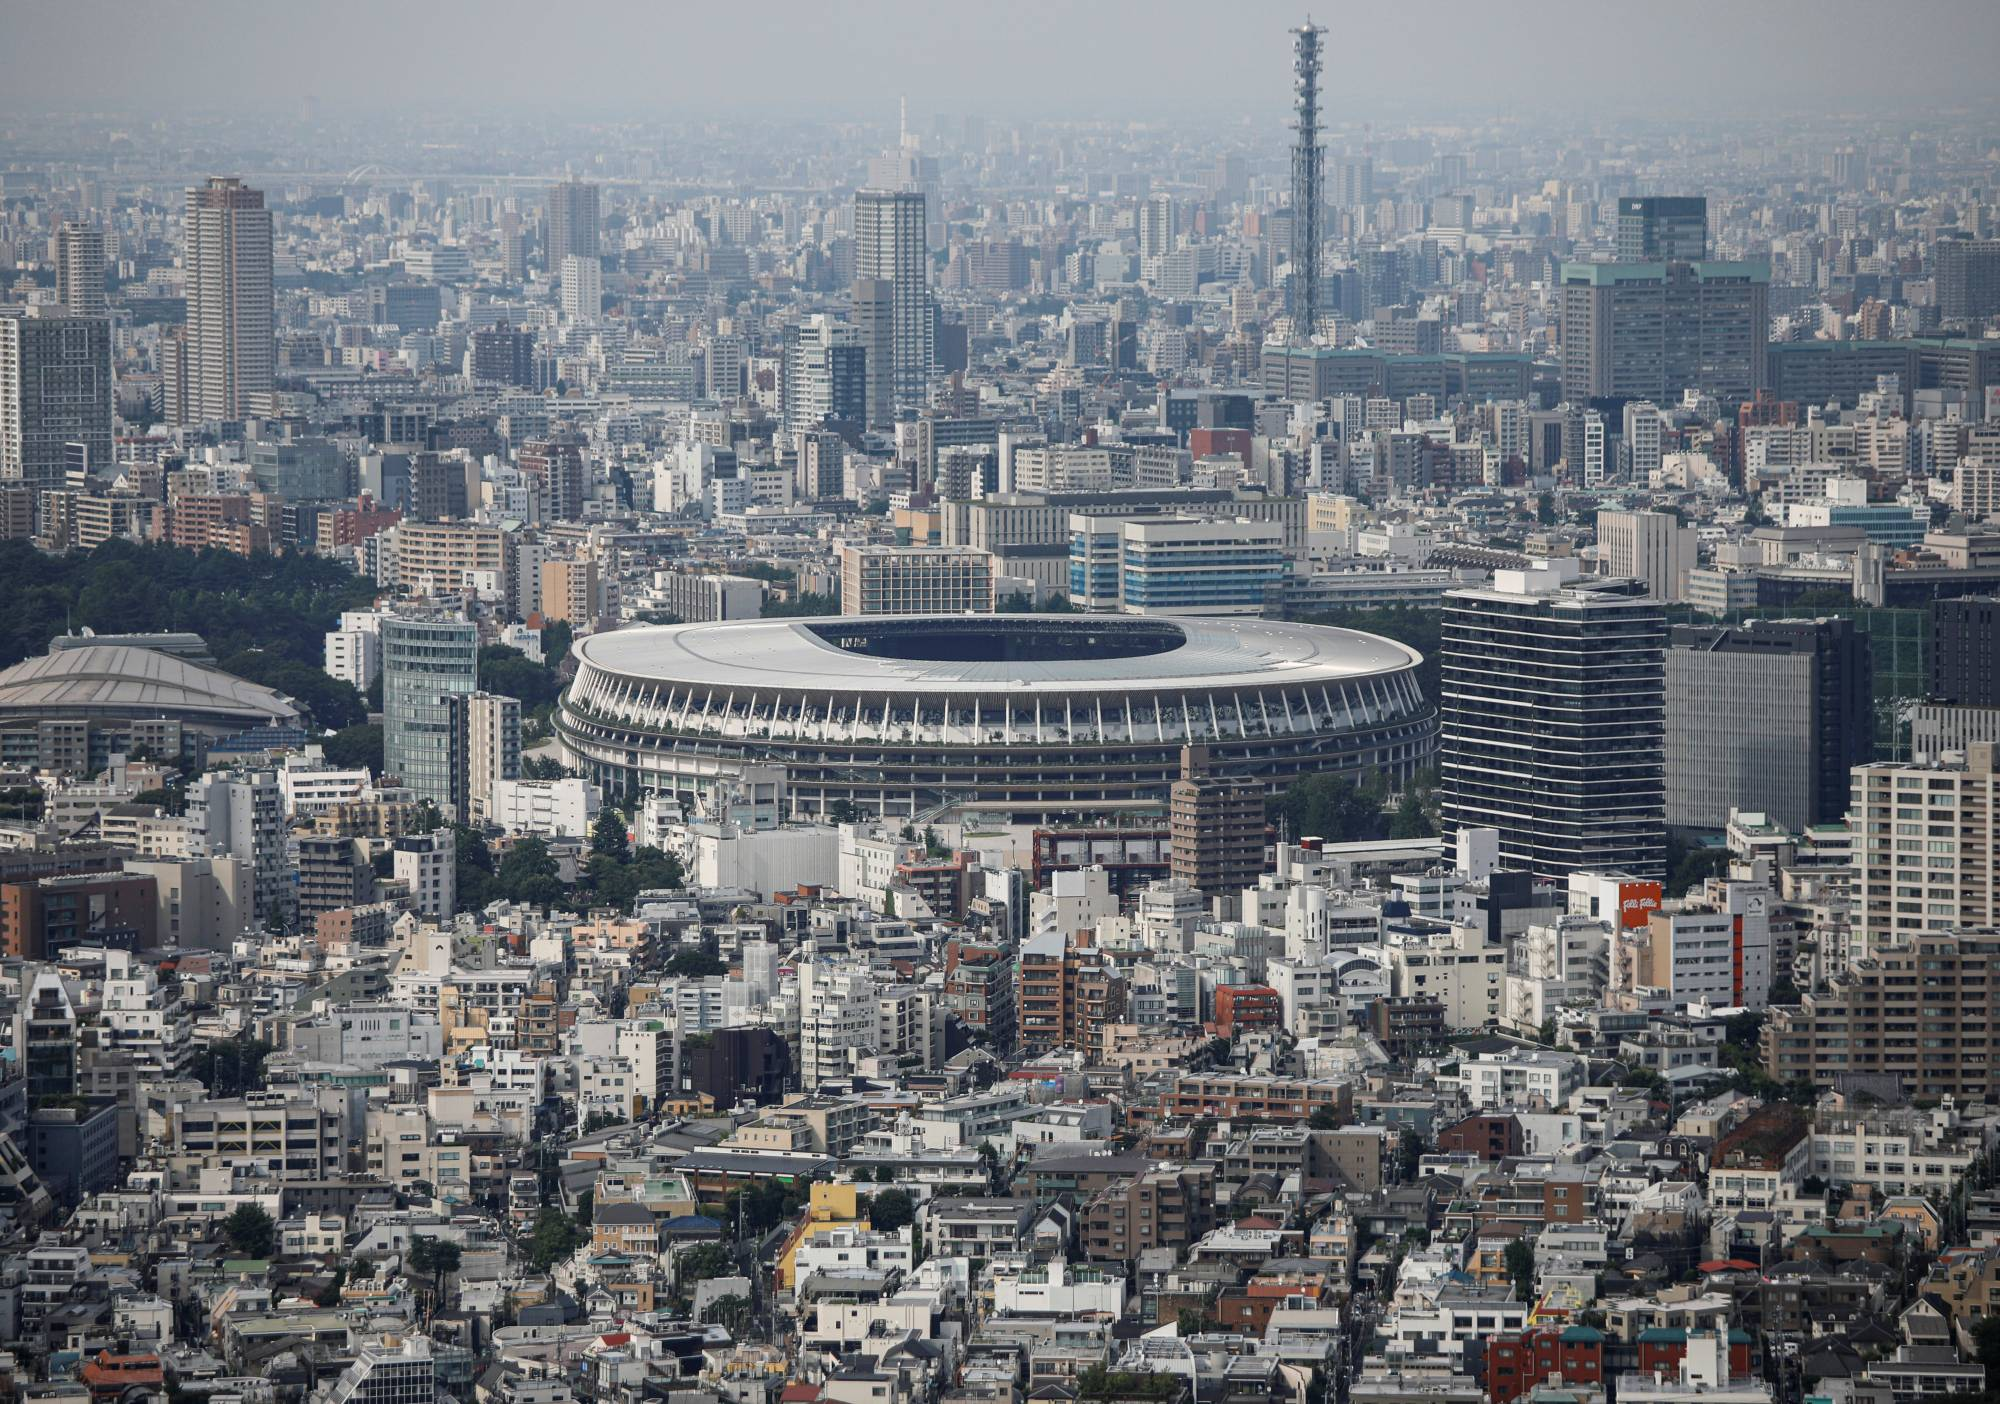 The National Stadium in Tokyo will serve as the main stadium of the 2020 Olympics and Paralympics. |  REUTERS